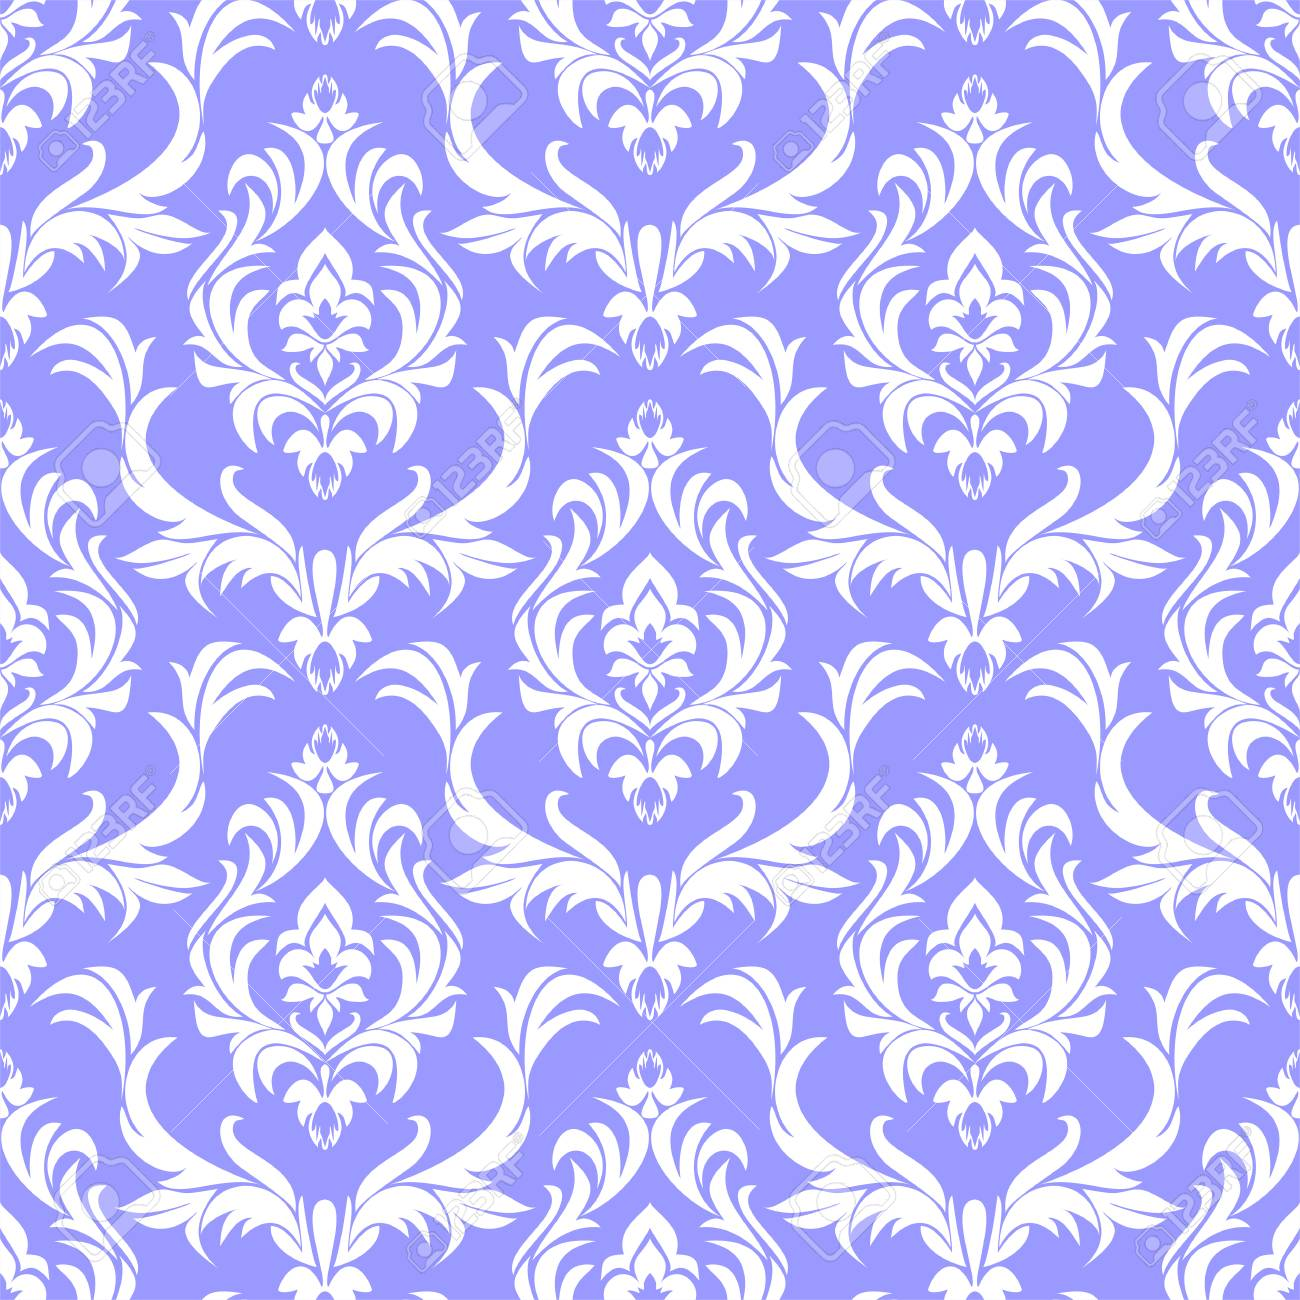 Seamless damask white Pattern on blue in retro Style - 97509754